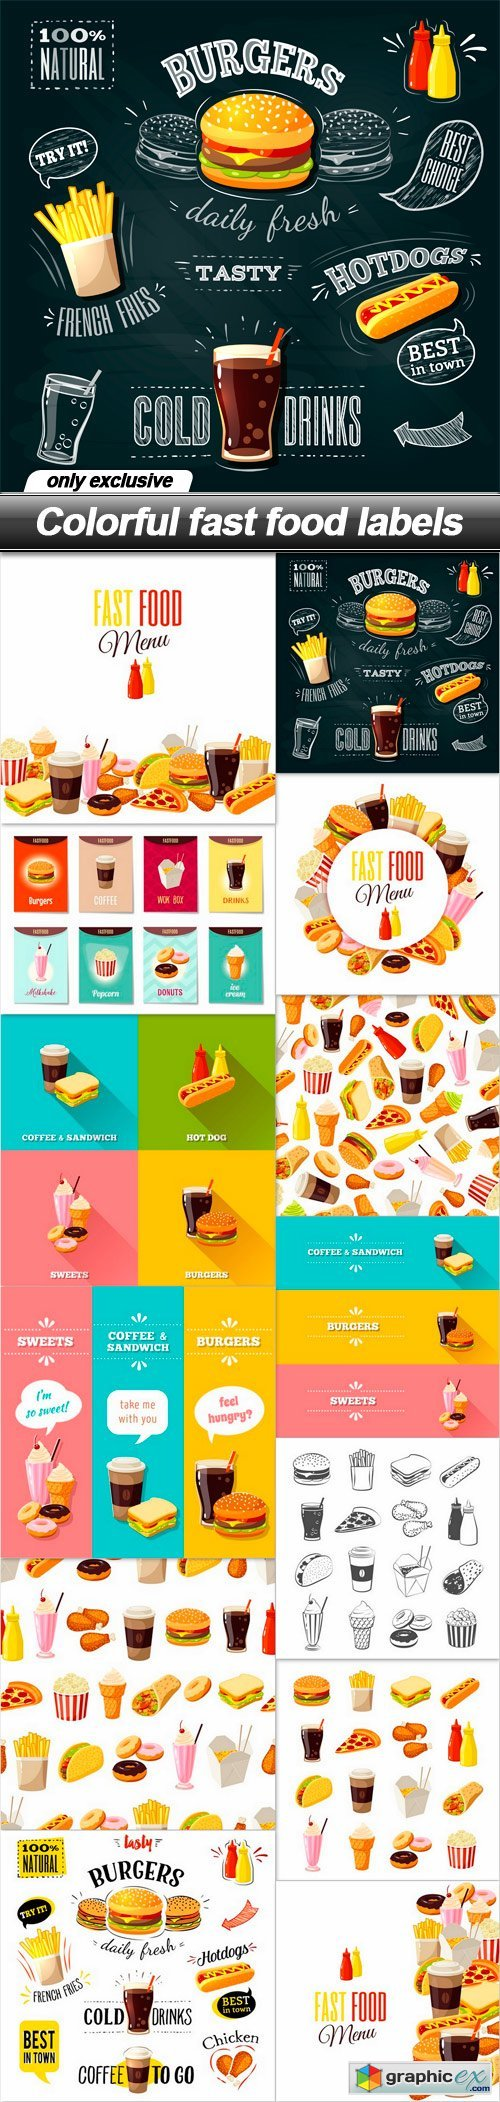 Colorful fast food labels - 13 EPS